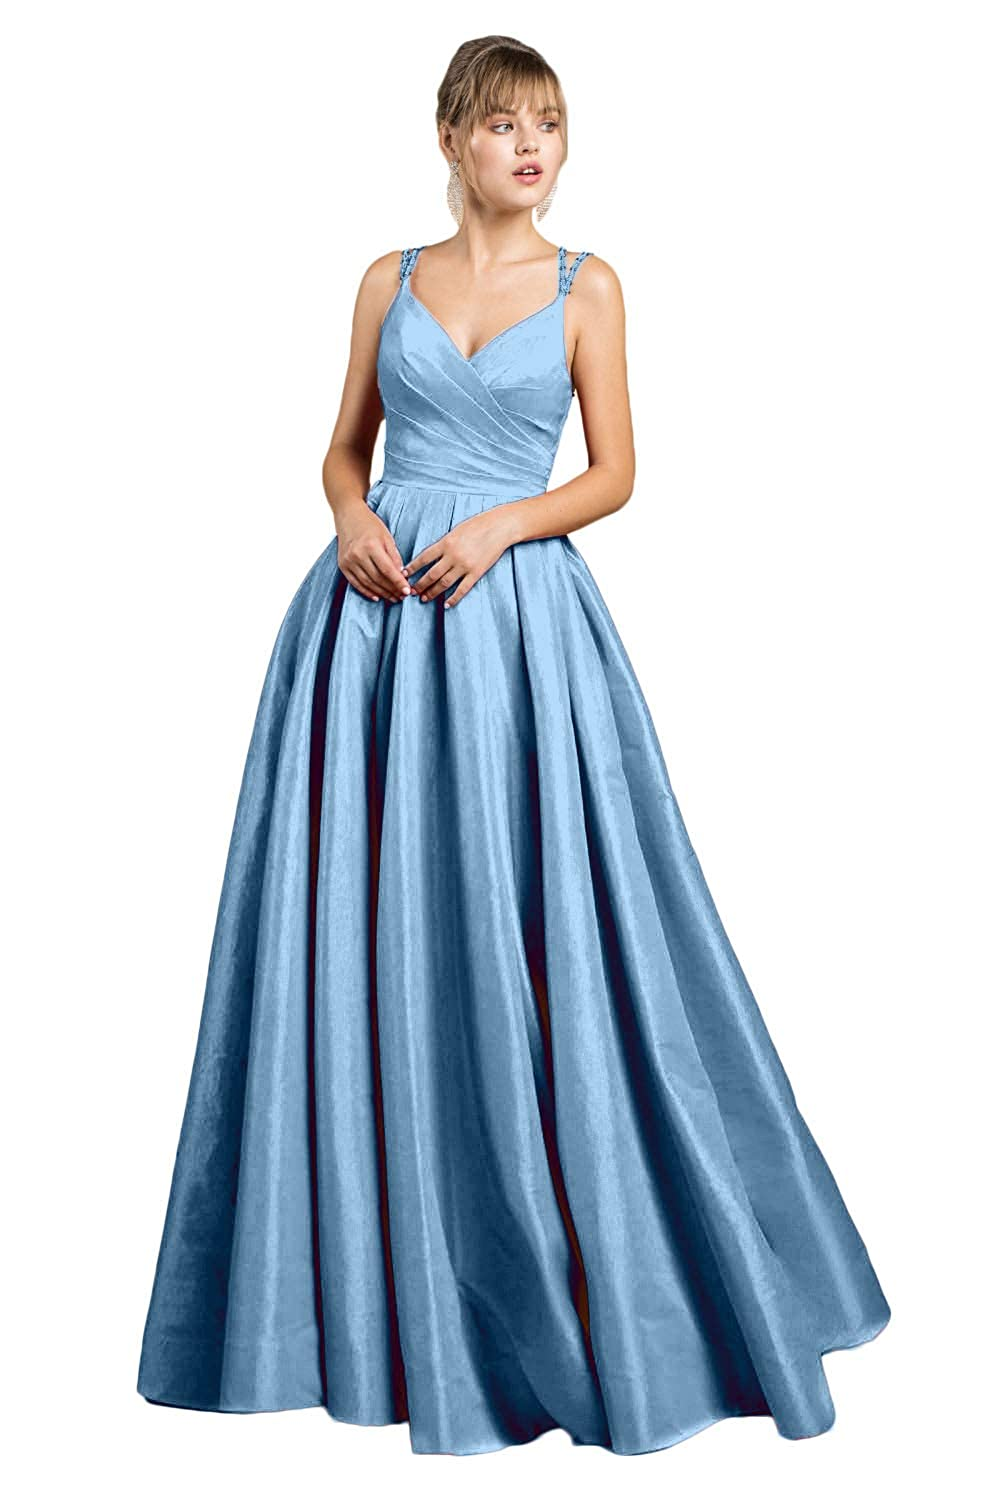 Baby bluee Yakey 2019 VNeck Long Prom Dresses for Girls Pleat Beading Straps Floor Length Evening Gowns